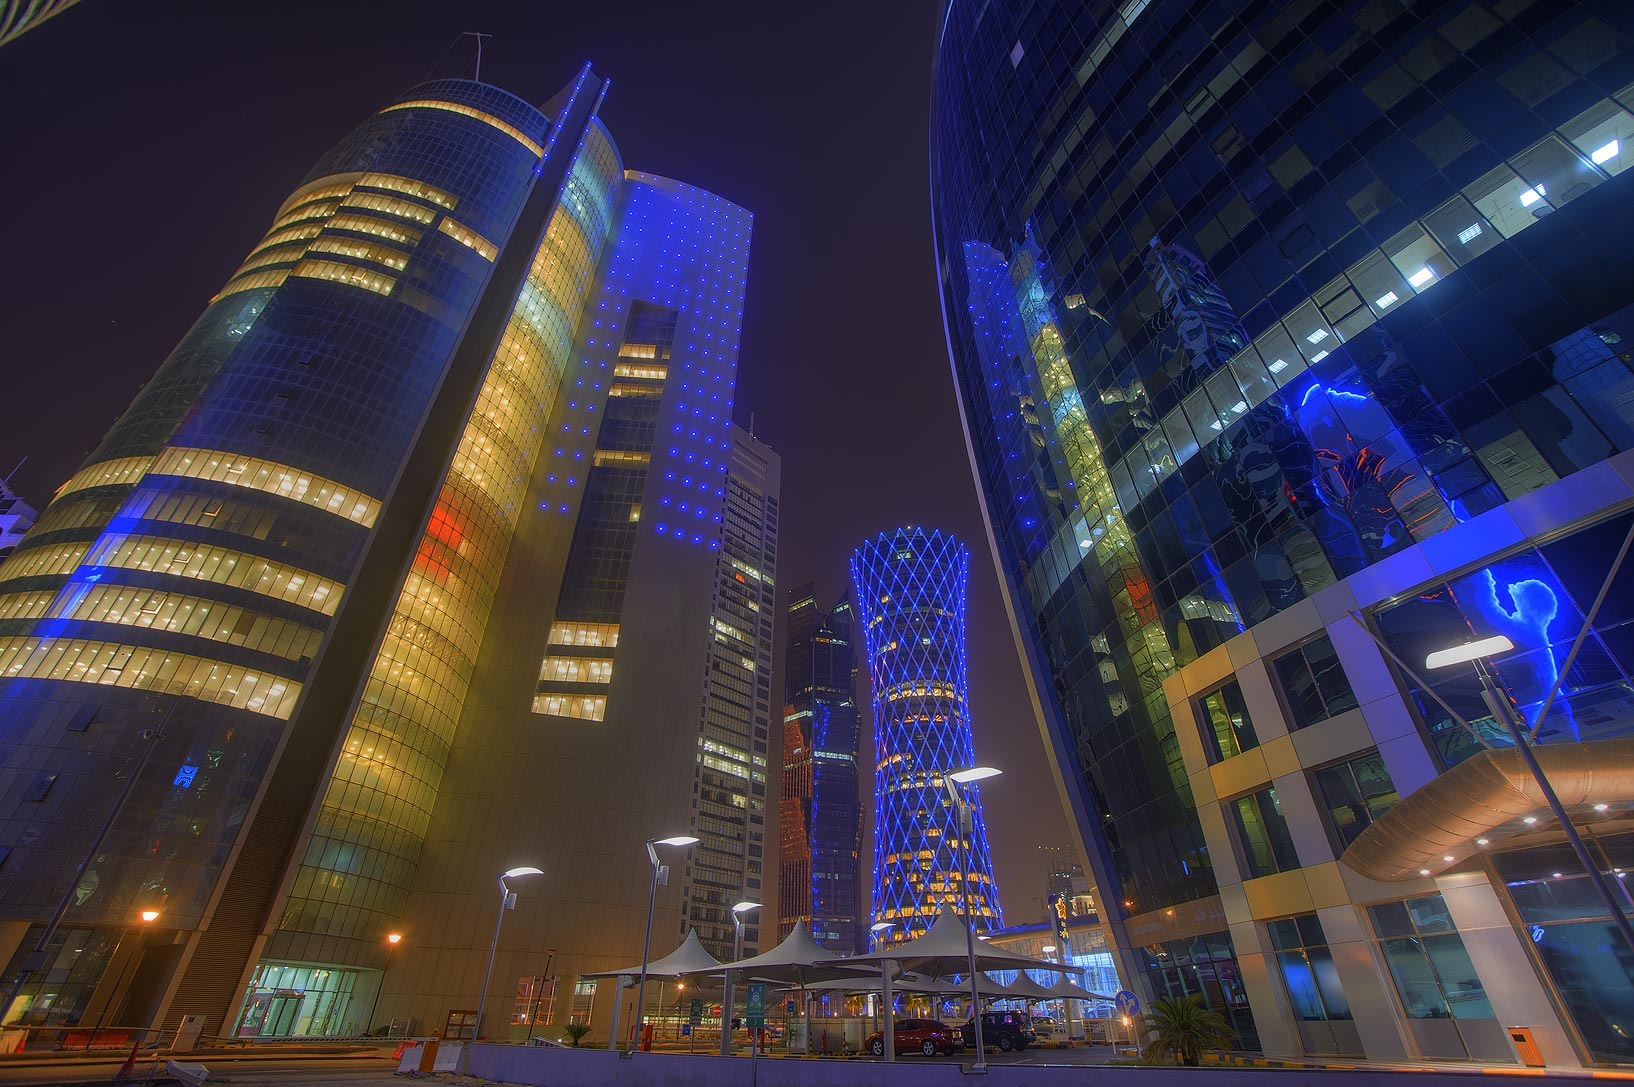 Nakheel and Woqod towers in West Bay at evening. Doha, Qatar